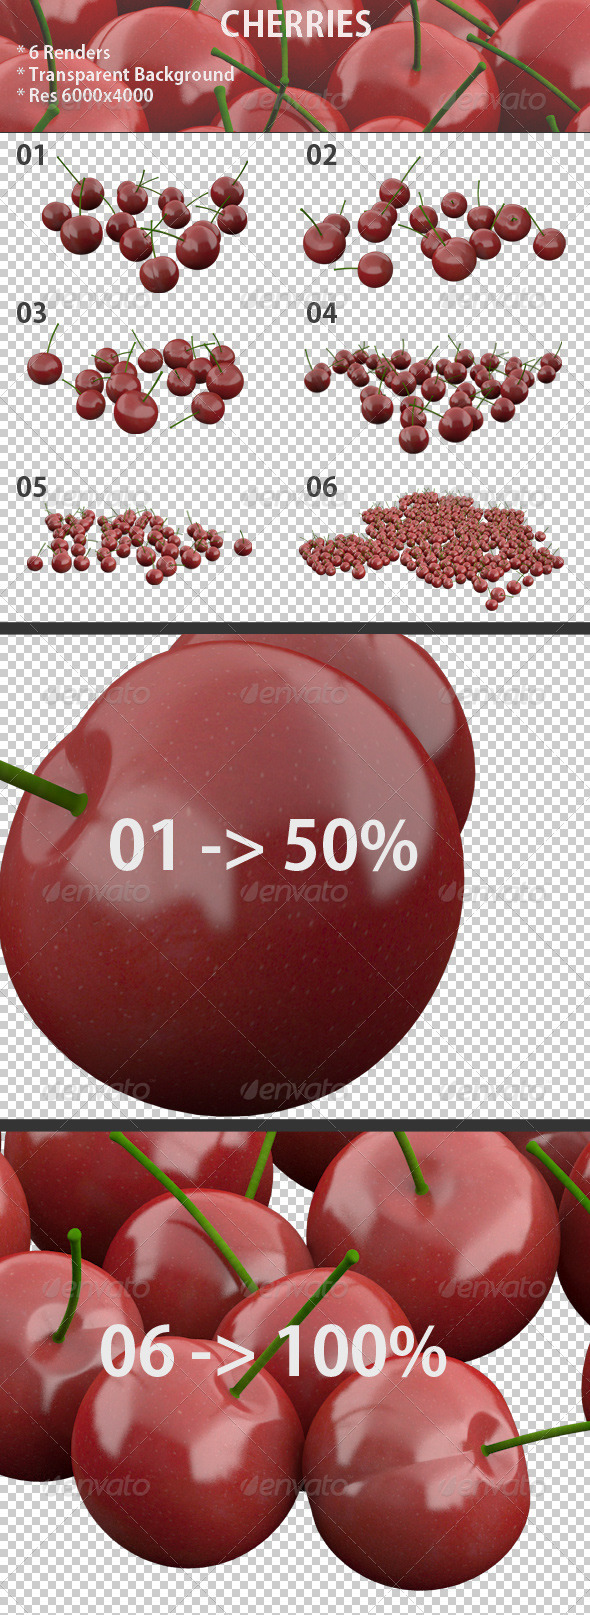 Cherries - 3D Renders Graphics